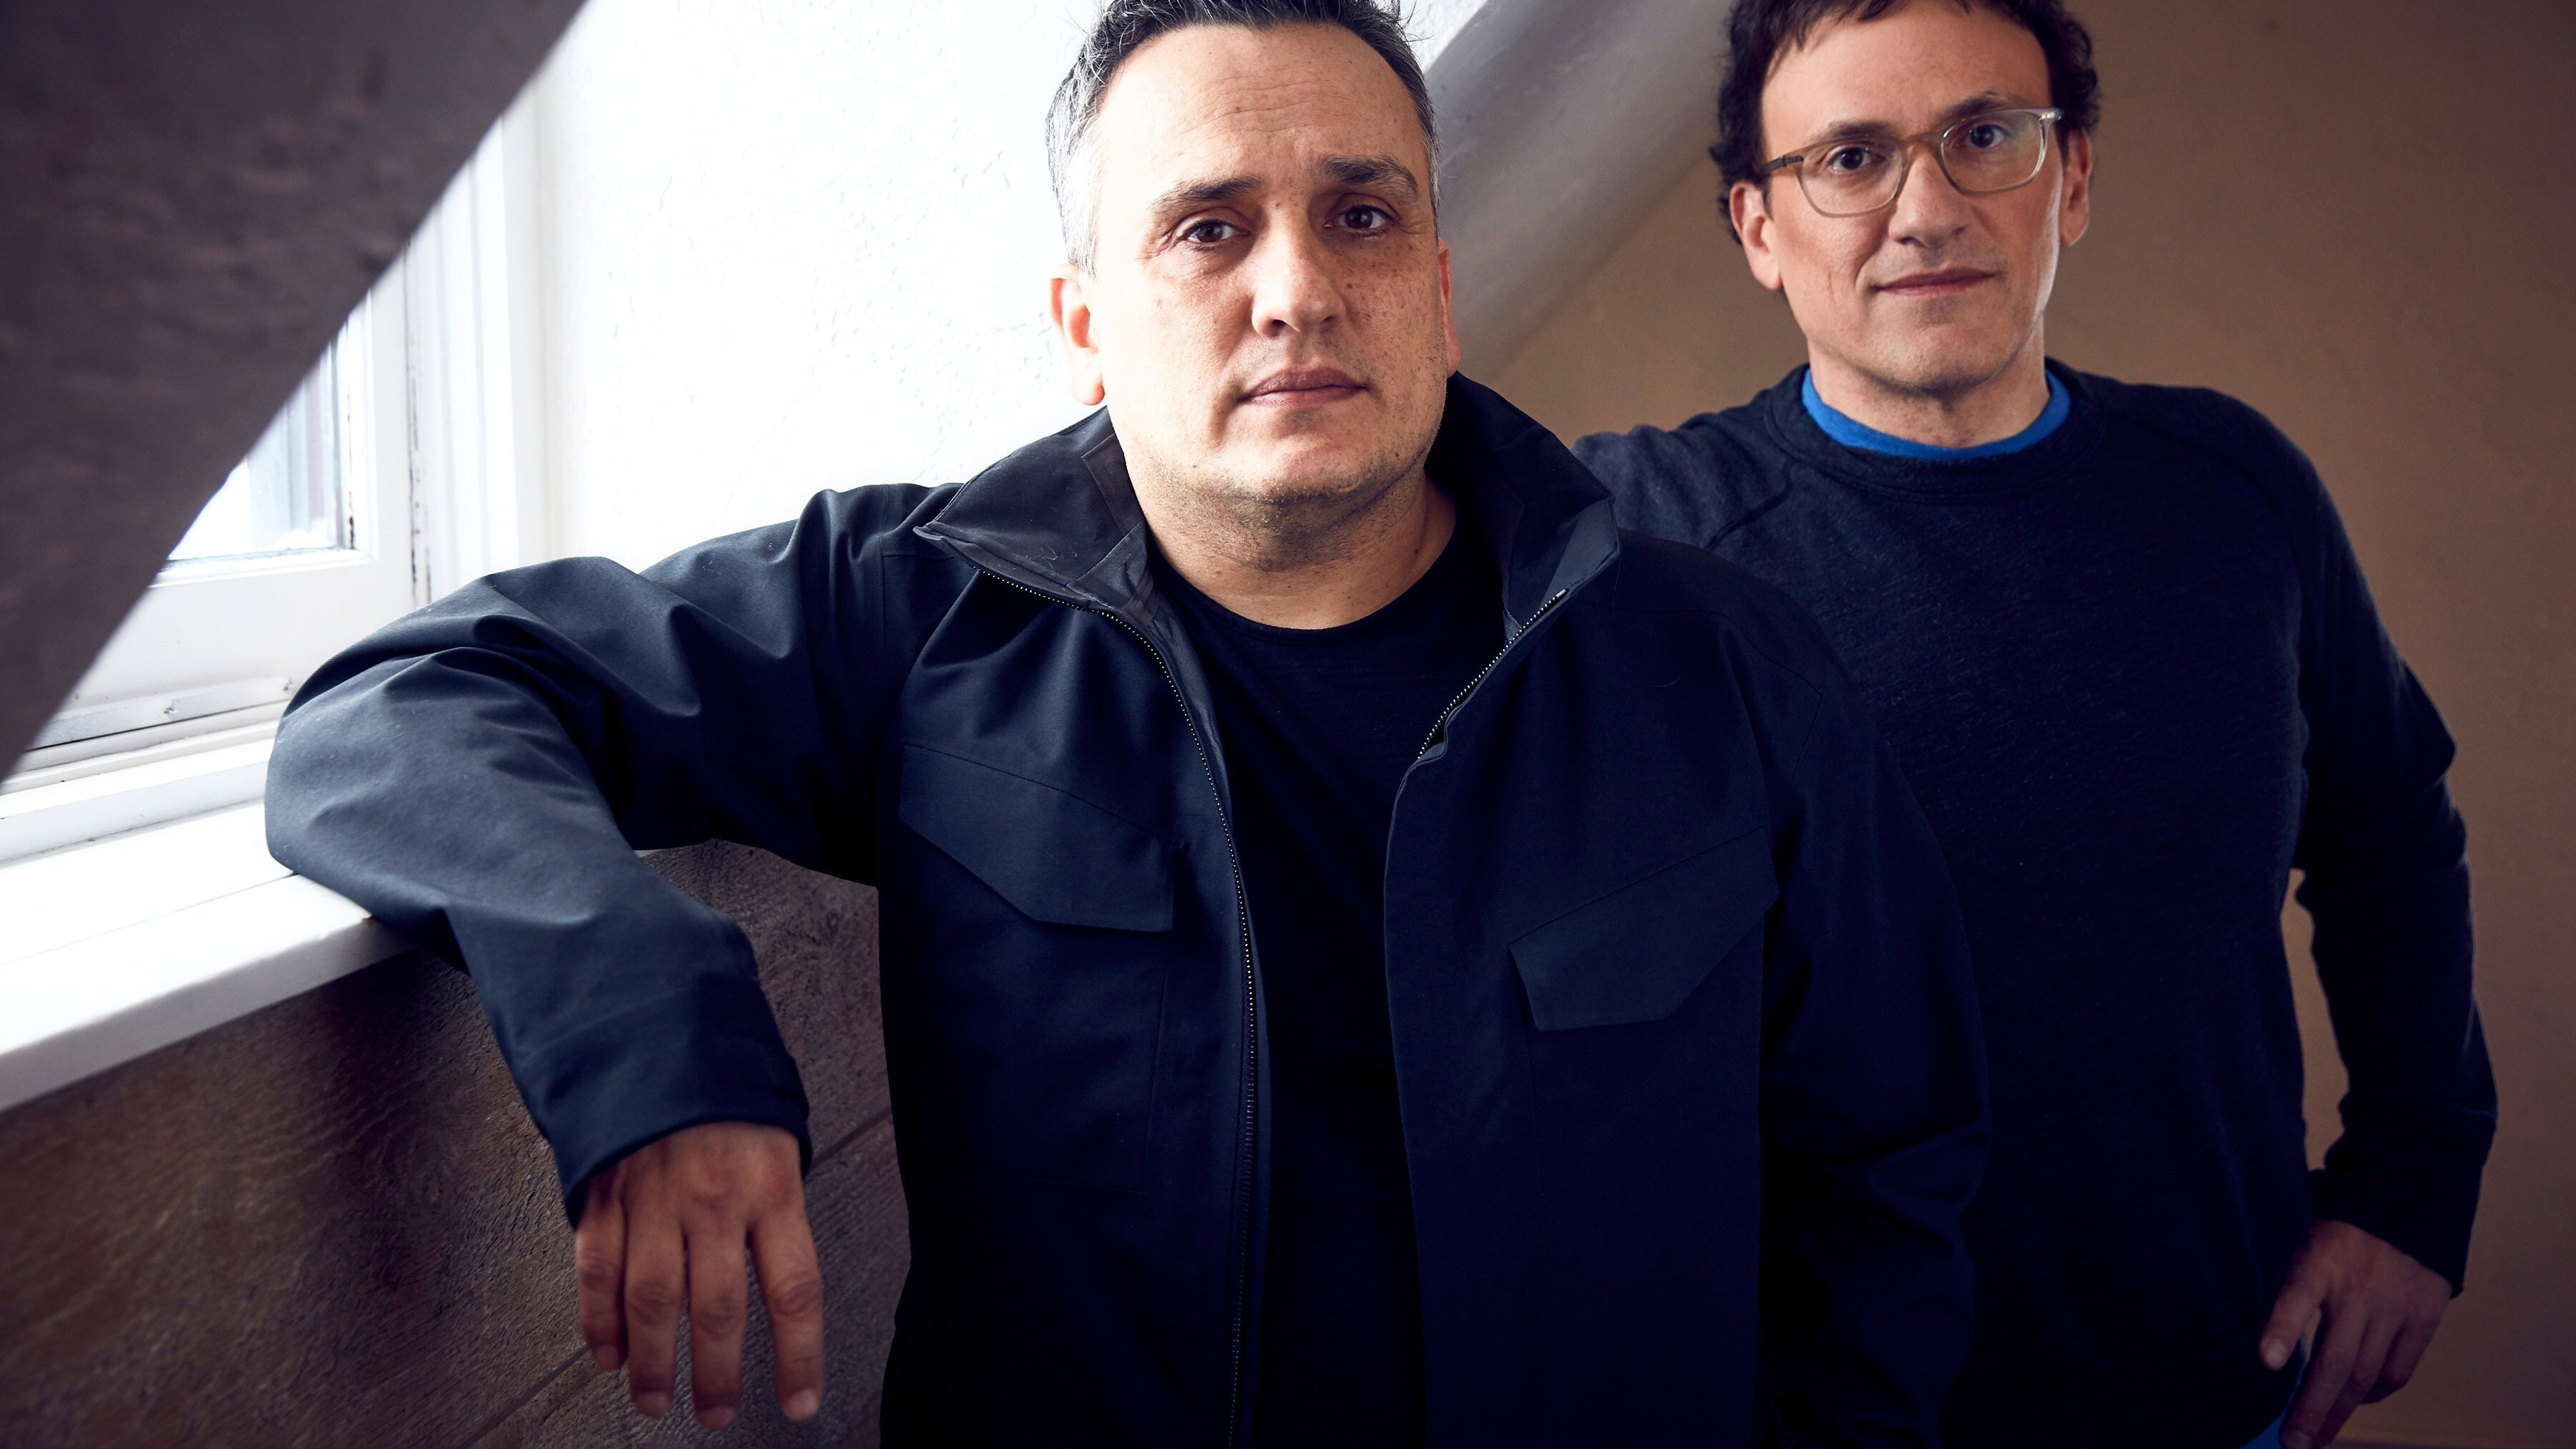 Everything We Learned from Directors Anthony and Joe Russo on the Set of Avengers: Infinity War